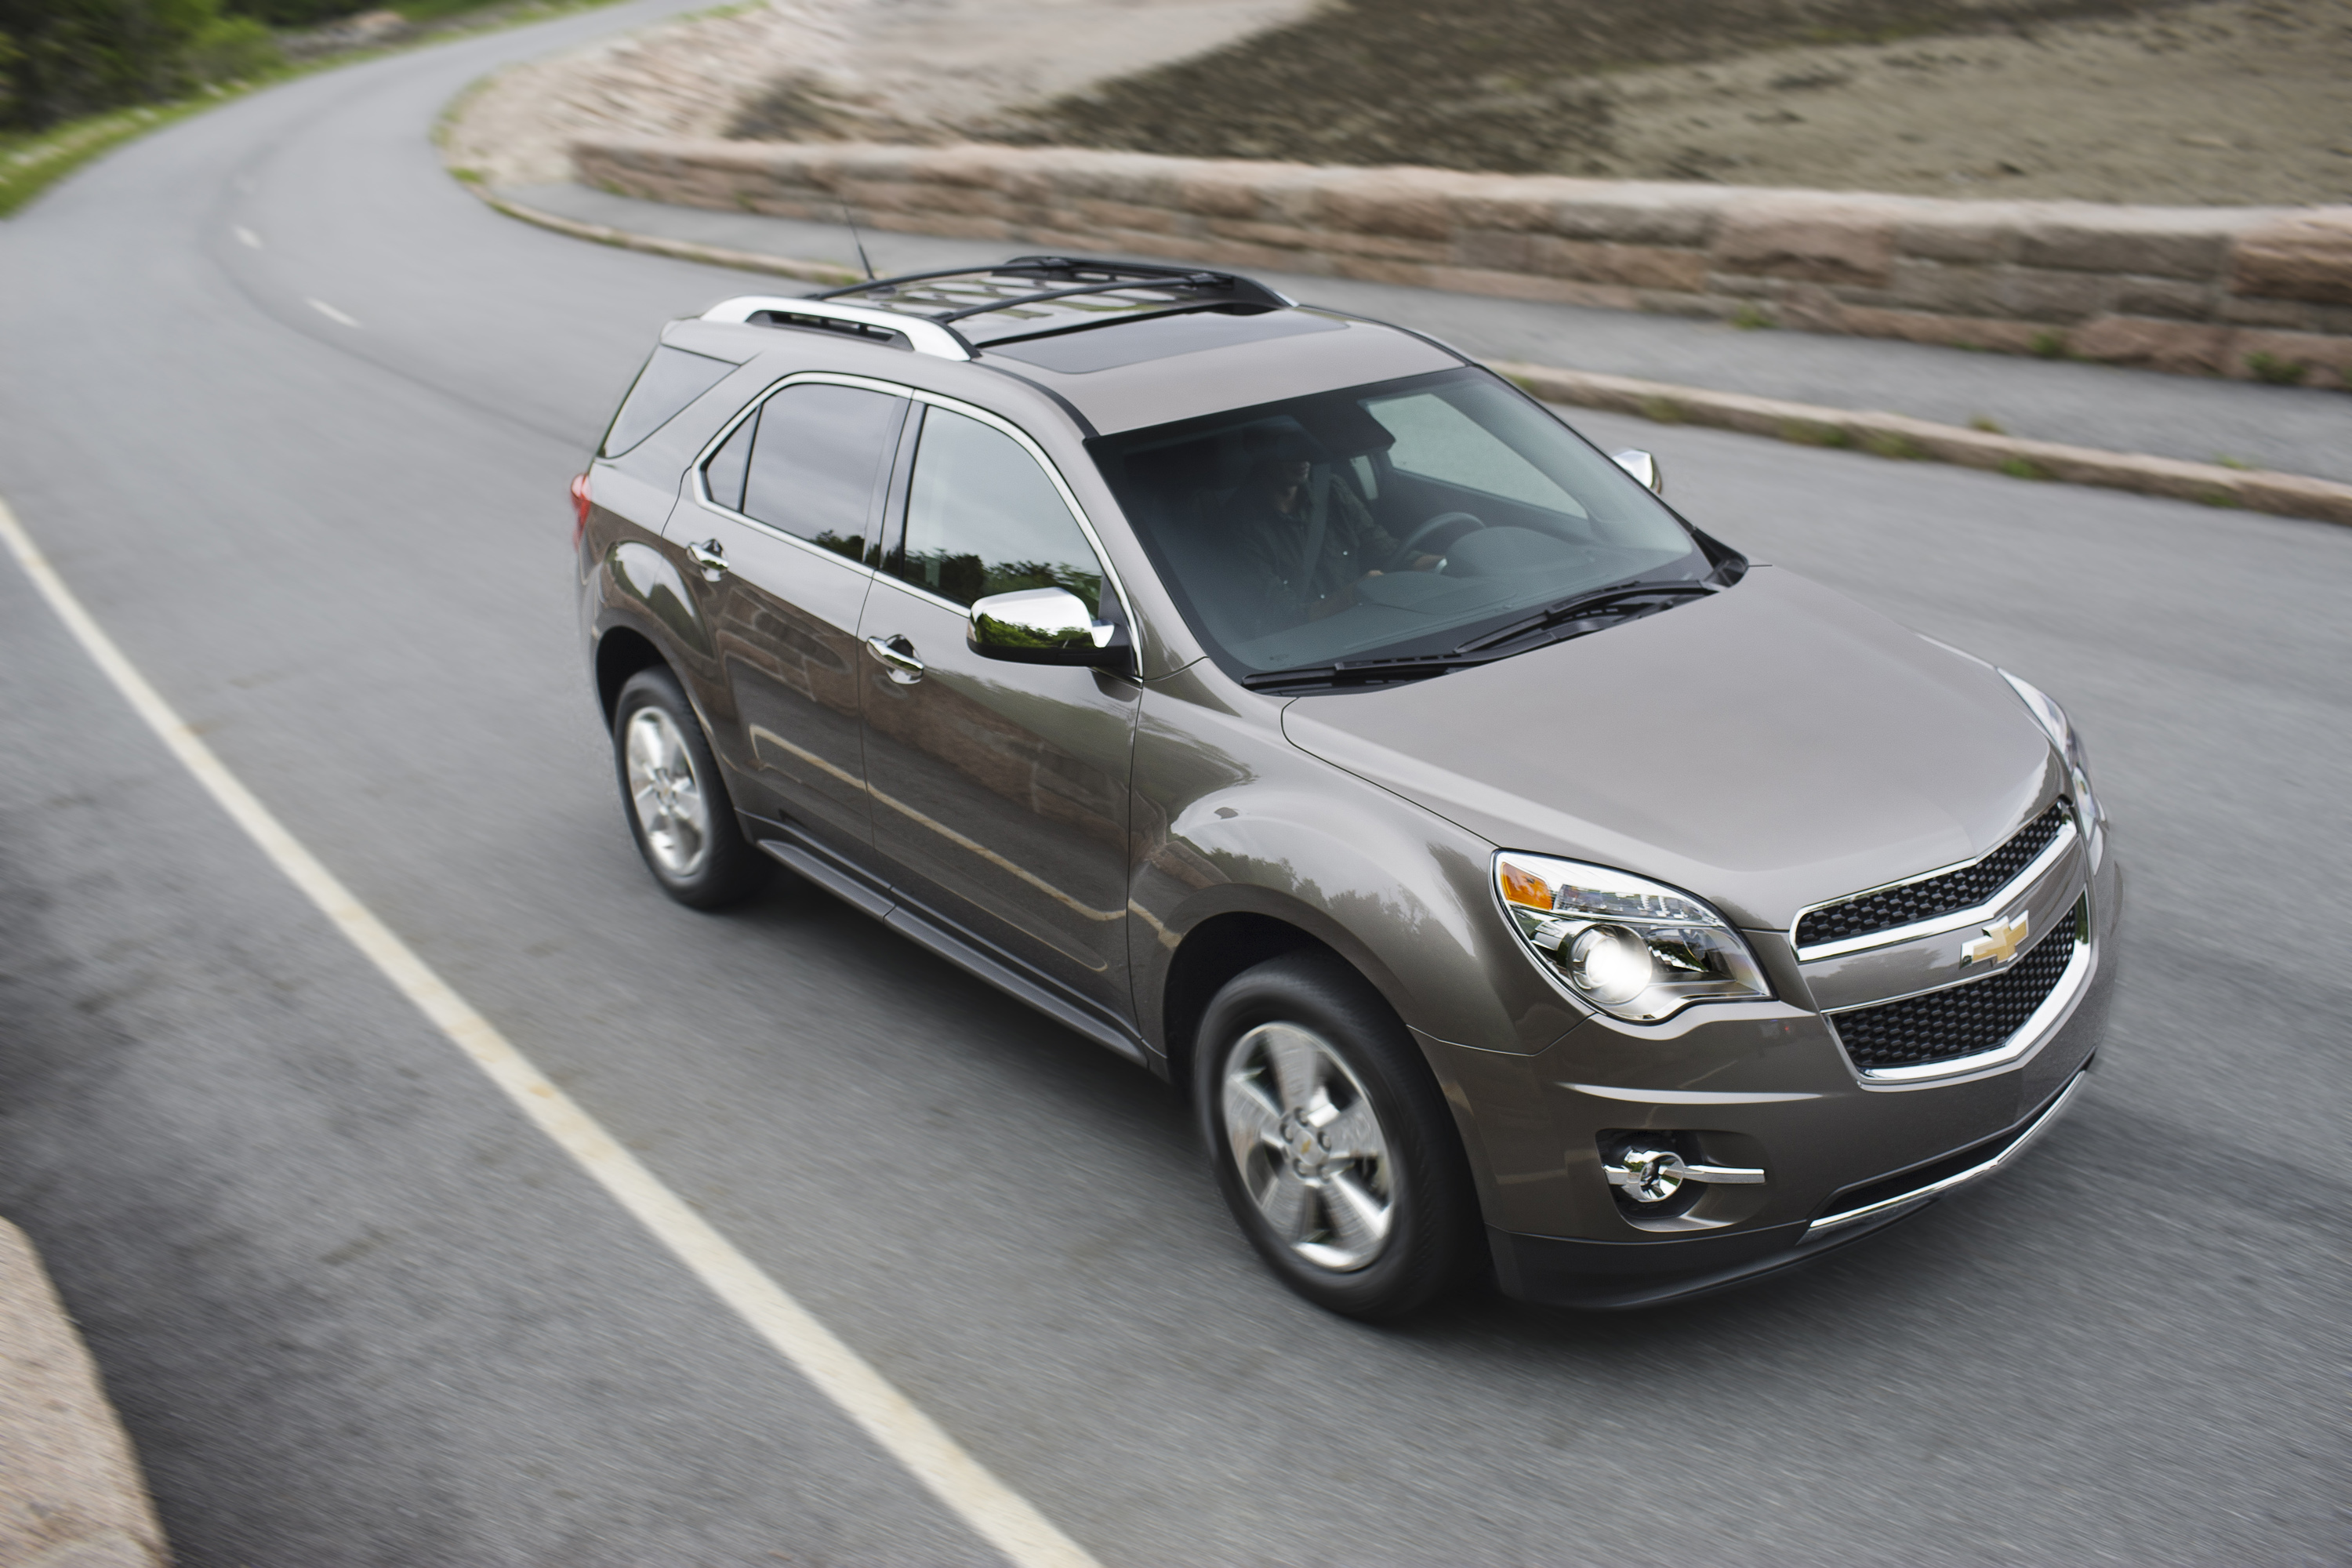 chevrolet-equinox-13 Great Description About 2011 Chevy Aveo Recalls with Captivating Images Cars Review